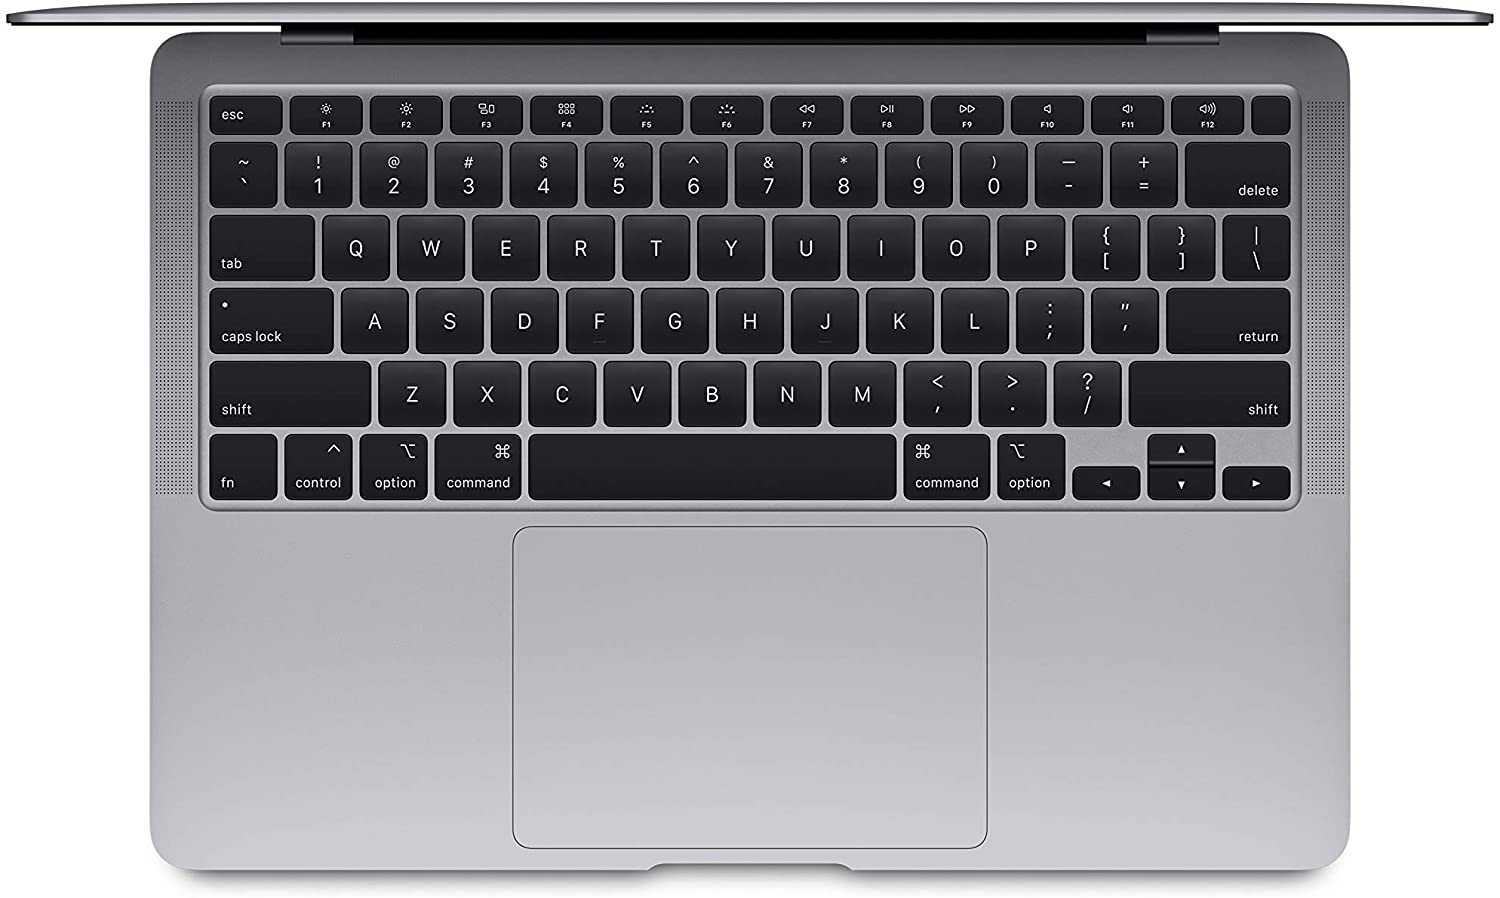 storage/backend/assets/images/product/16155372891Ikn-Mac-book-air-2.jpg